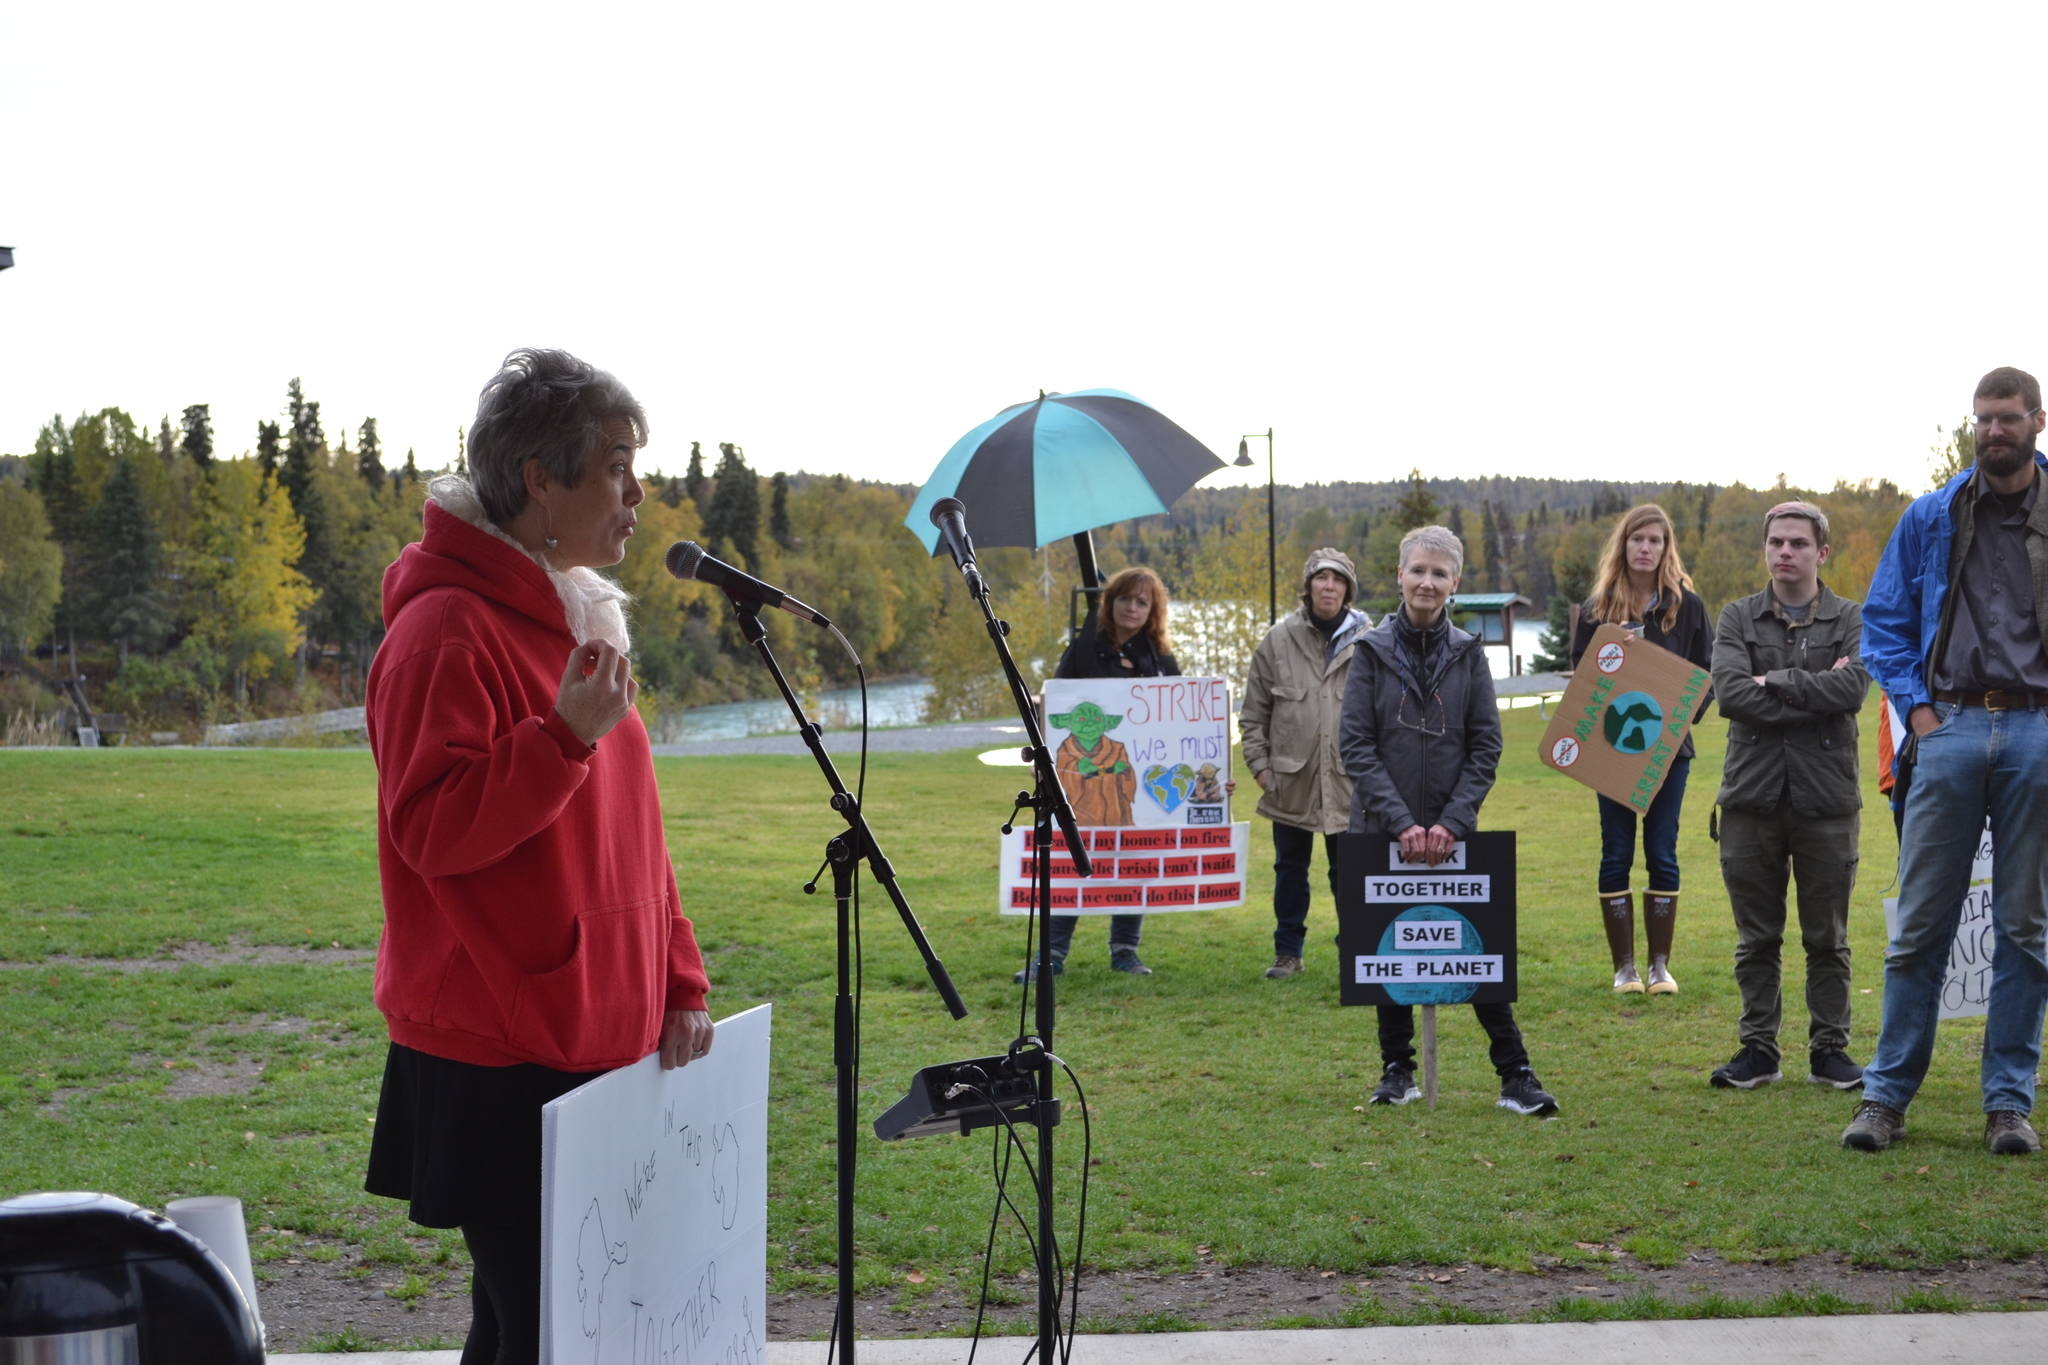 Soldotna physician Kristen Mitchell speaks to participants in the Soldotna Climate Strike in Soldotna Creek Park on Sept. 20, 2019. (Photo by Brian Mazurek/Peninsula Clarion)